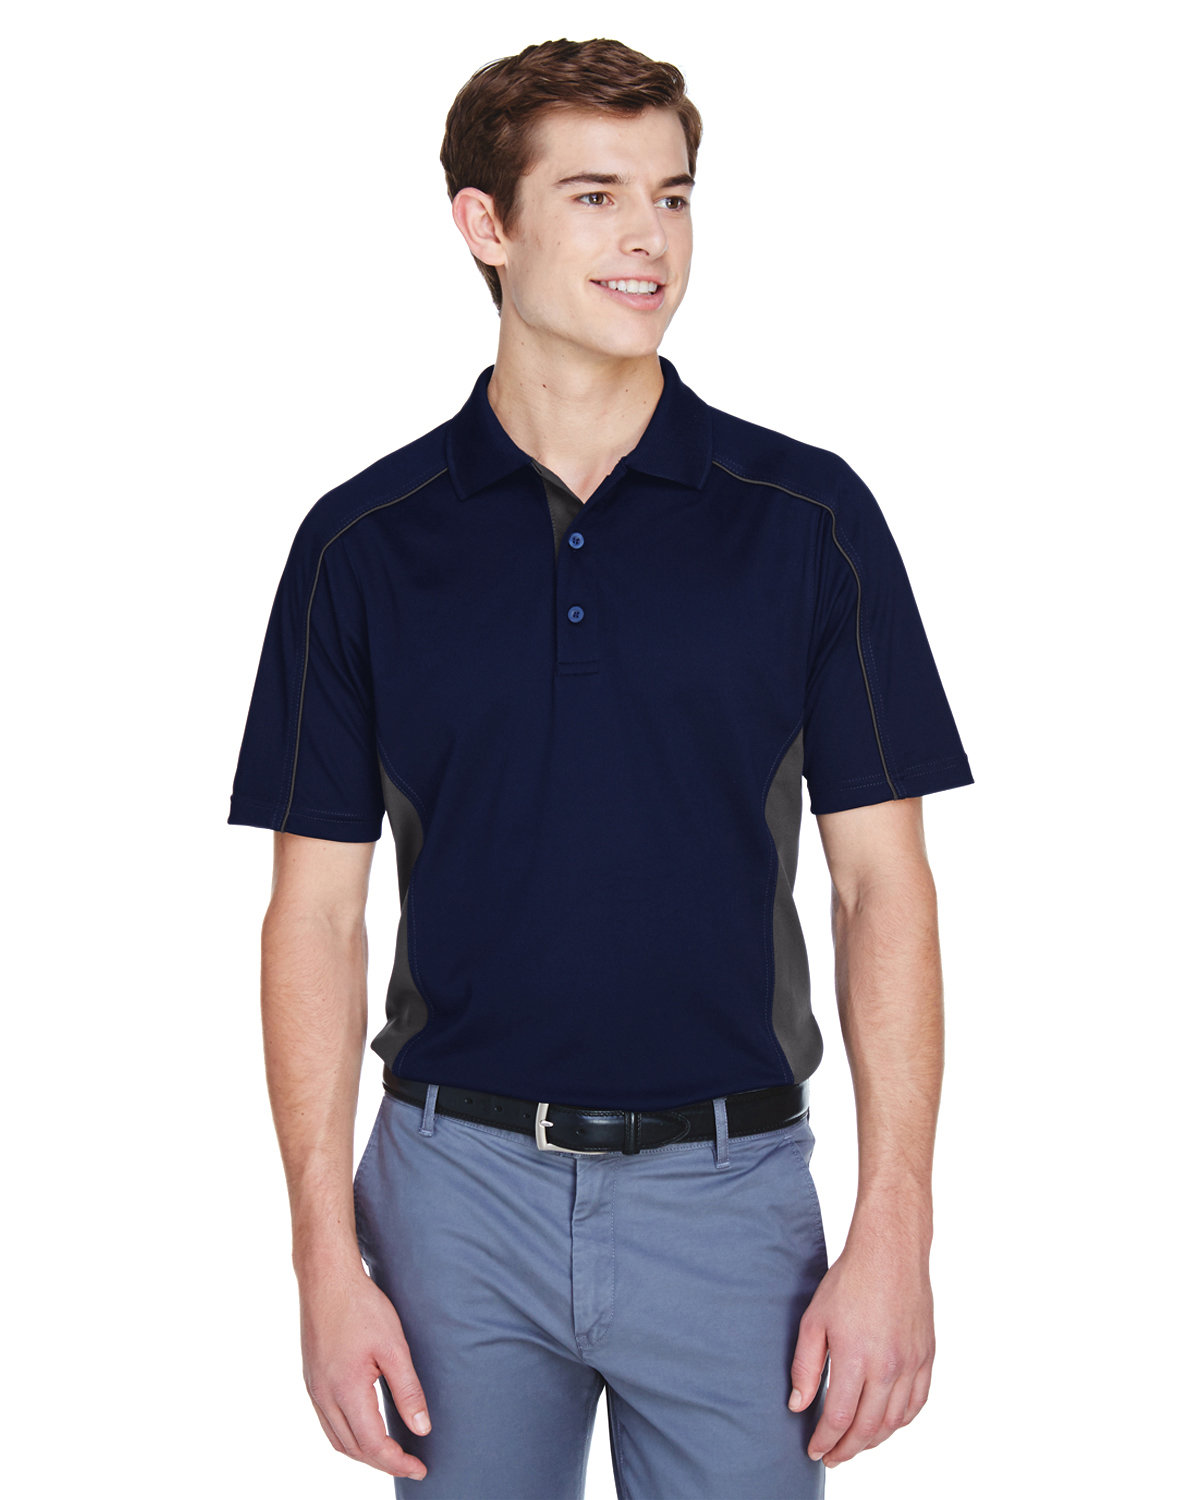 Extreme Men's Tall Eperformance™ Fuse Snag Protection Plus Colorblock Polo CLASC NAVY/ CRBN